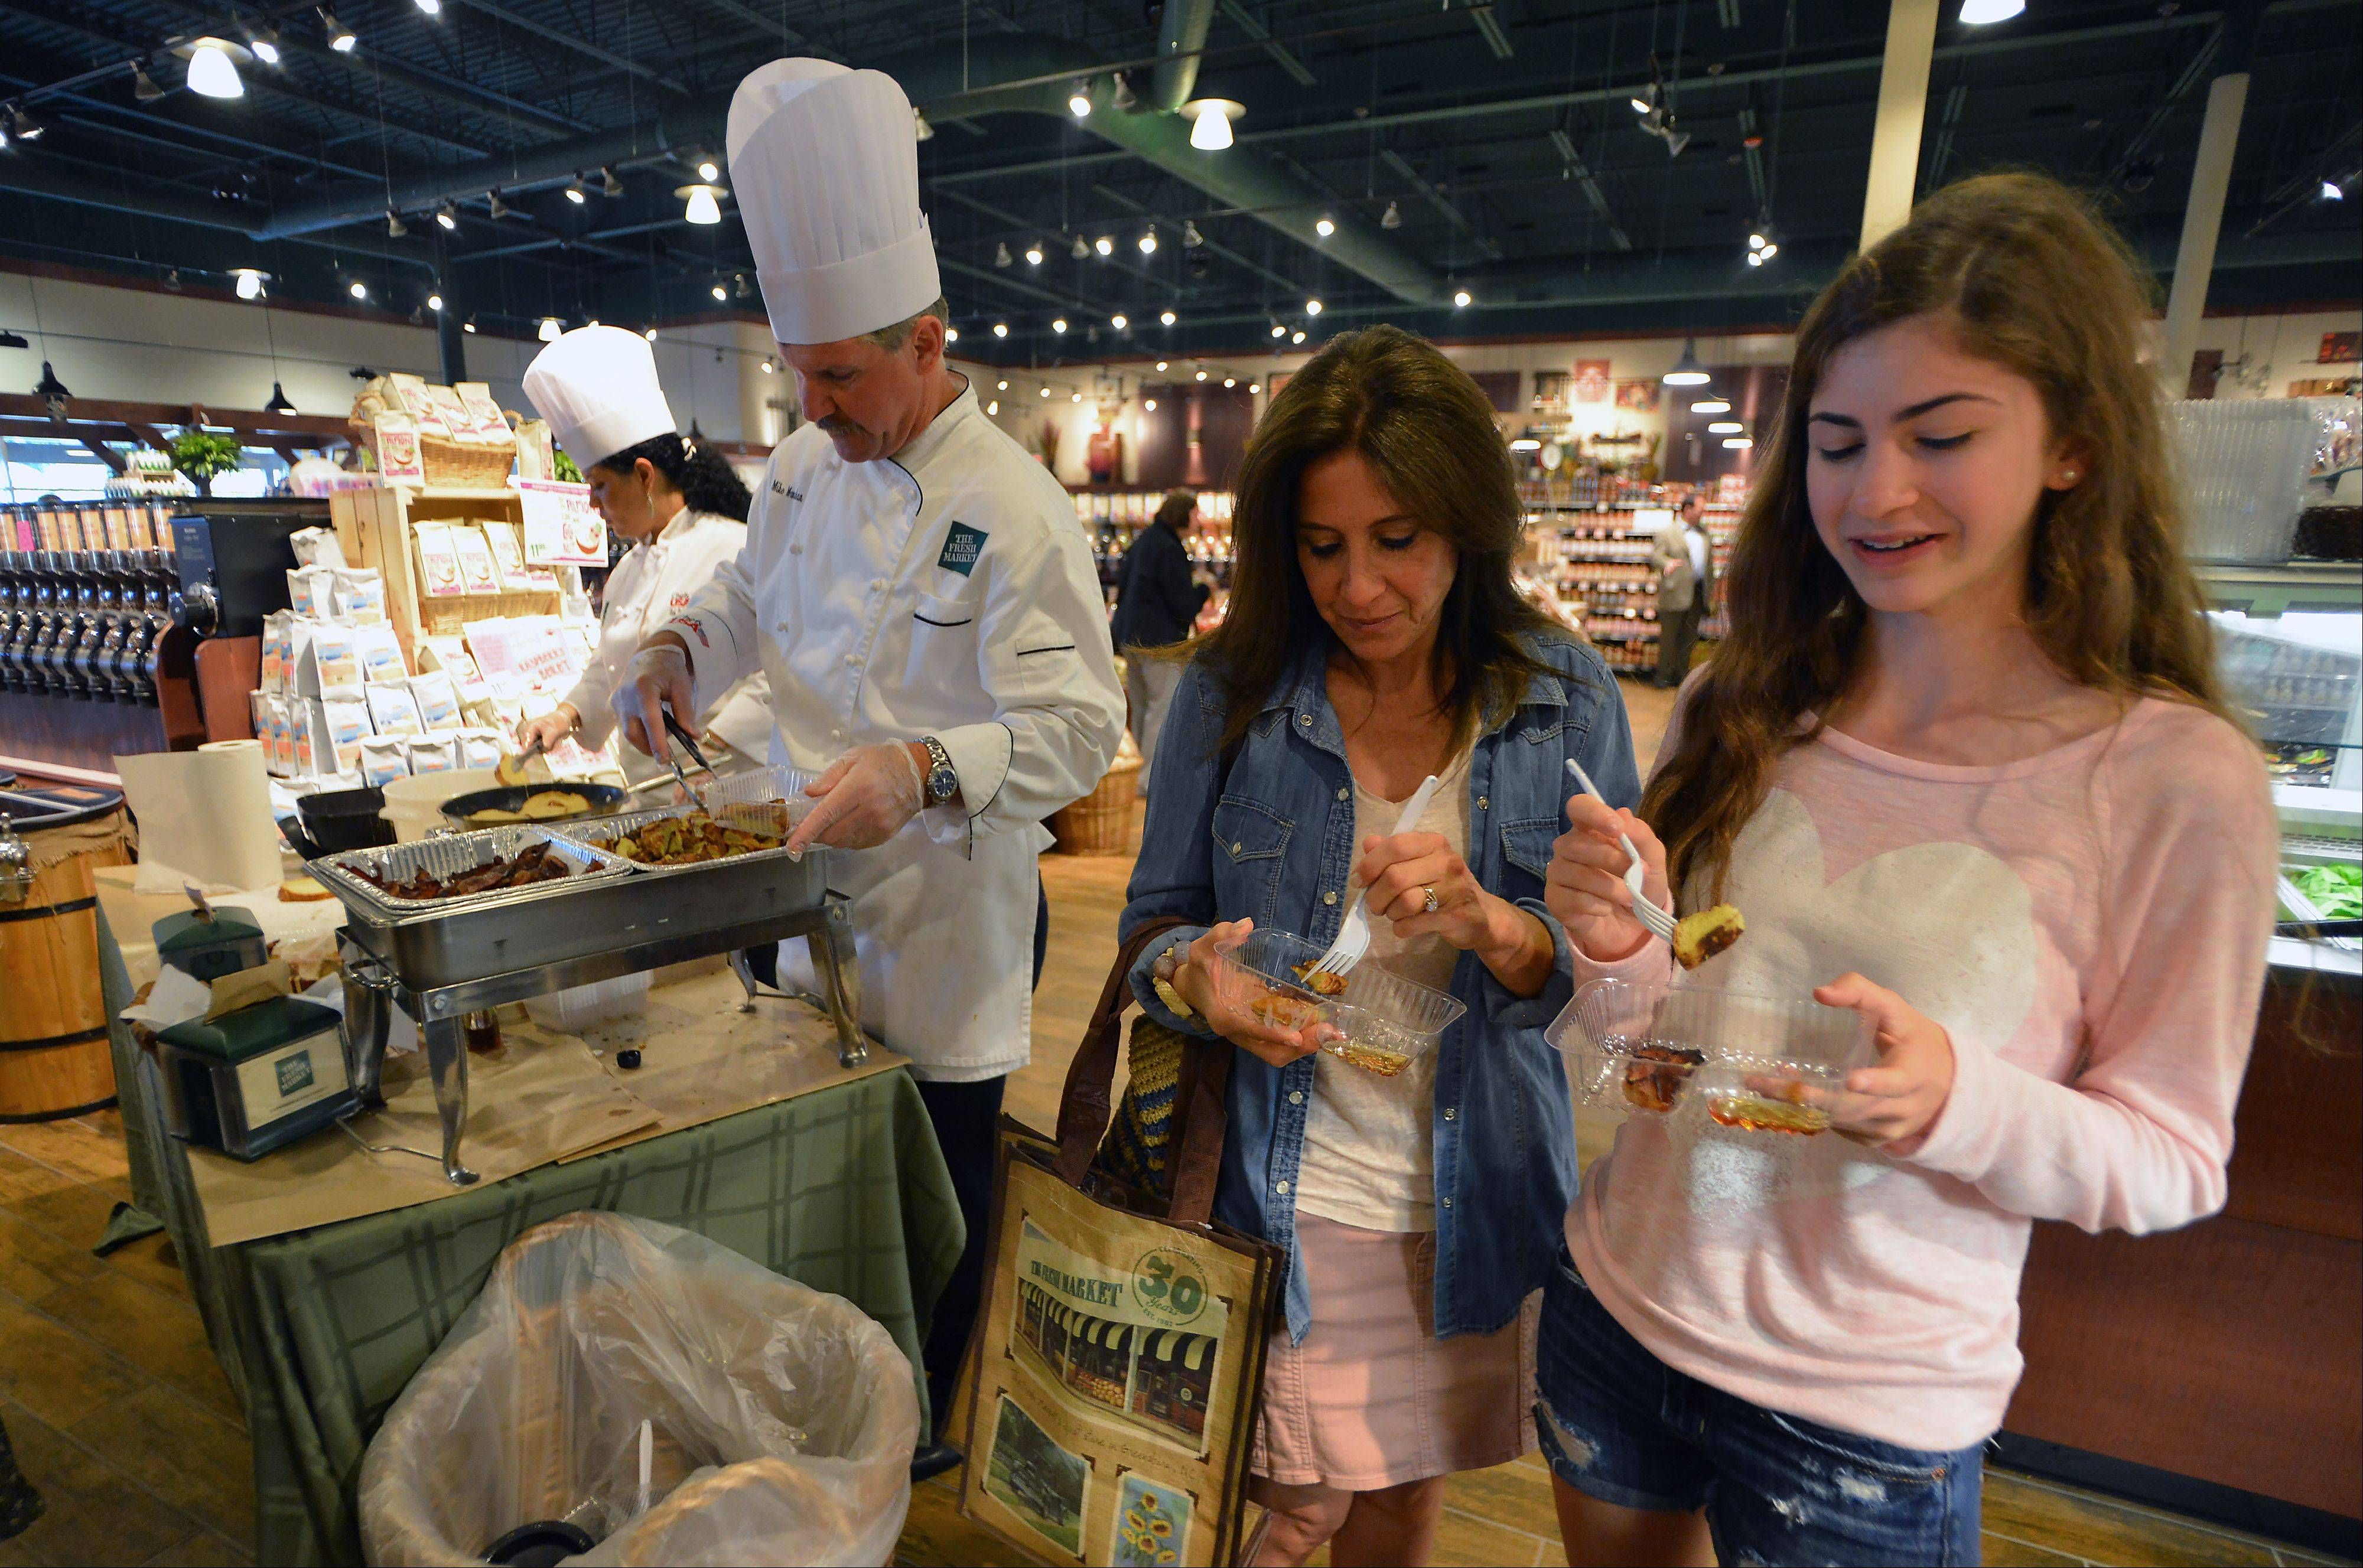 Shoppers Lori Abrams and her daughter Talia, 16, of Buffalo Grove, prepare to taste food samples from Chef Mike Monahan of Alanta, Georgia and Chef Desiree Price, of Spring Grove, at the grand opening of The Fresh Market in Lincolnshire on Wednesday.